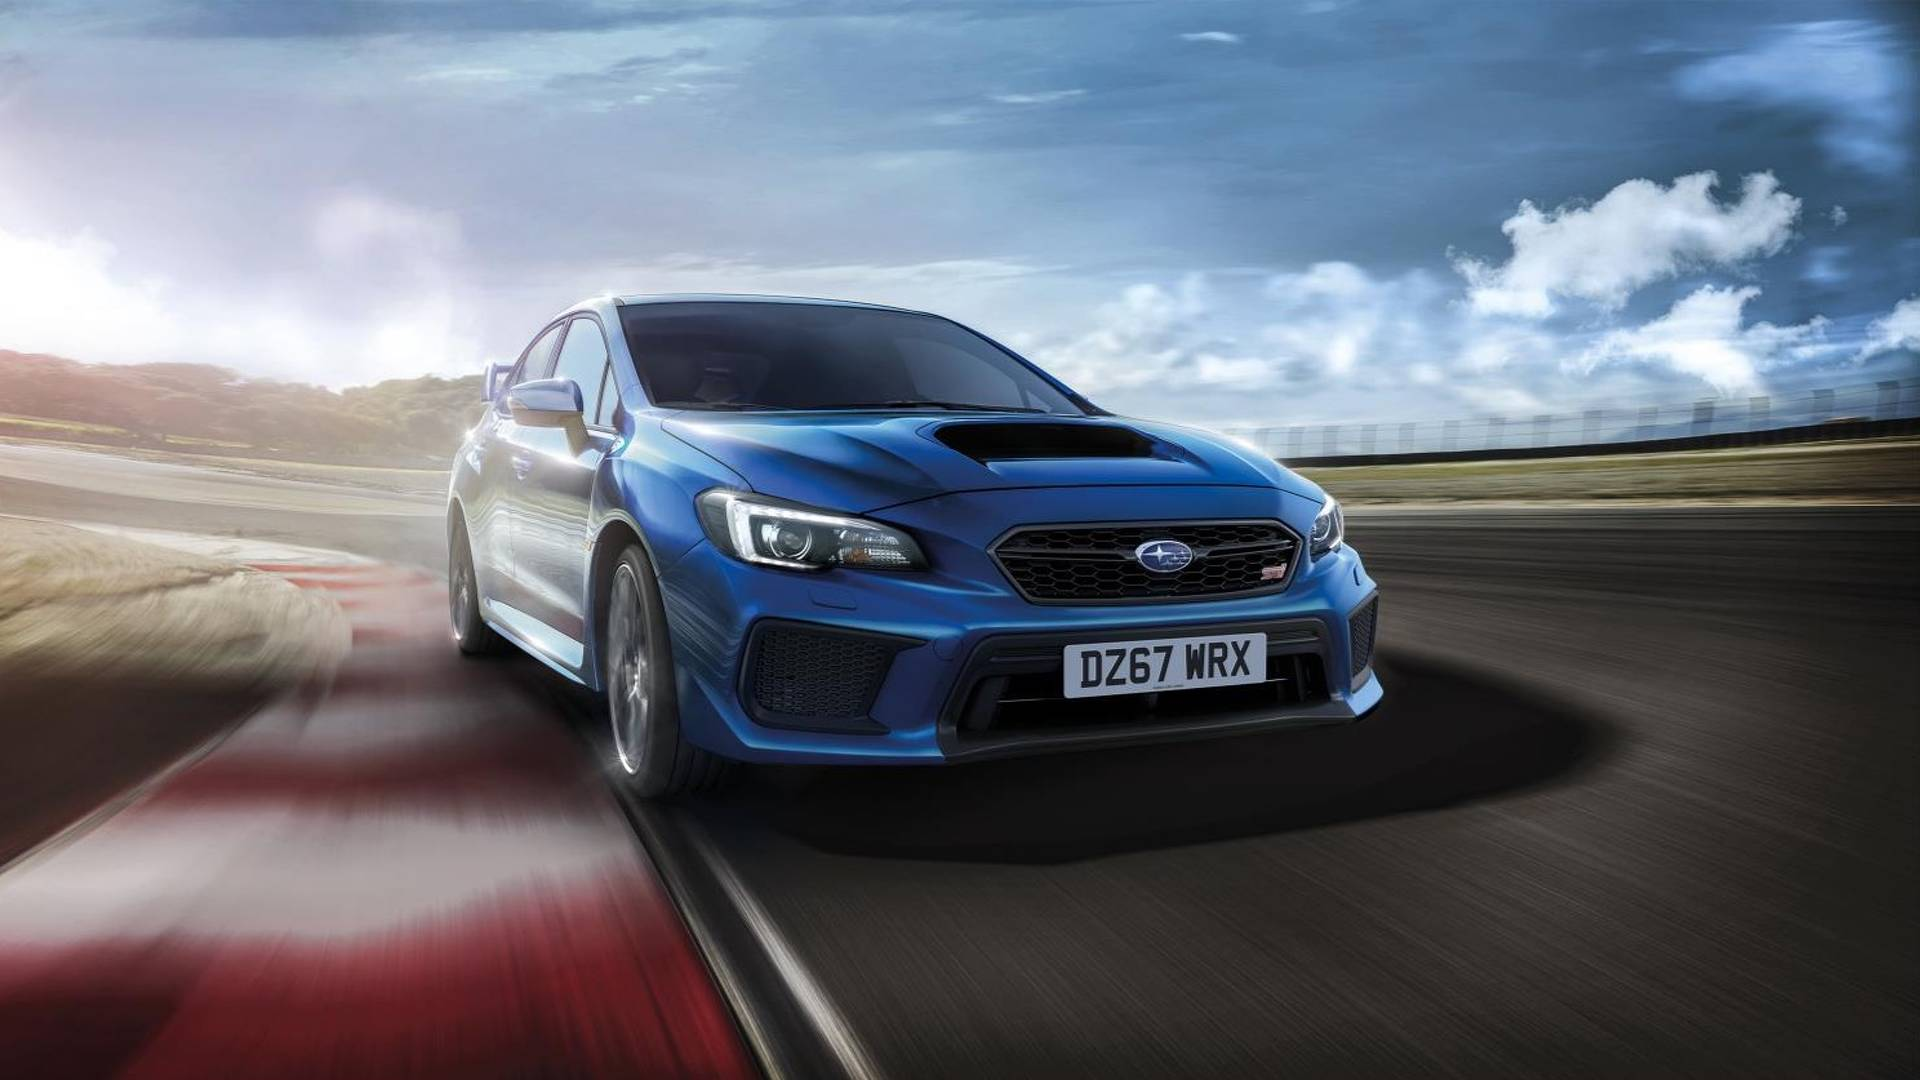 Subaru WRX STI Final Edition Marks The End Of An Era For UK